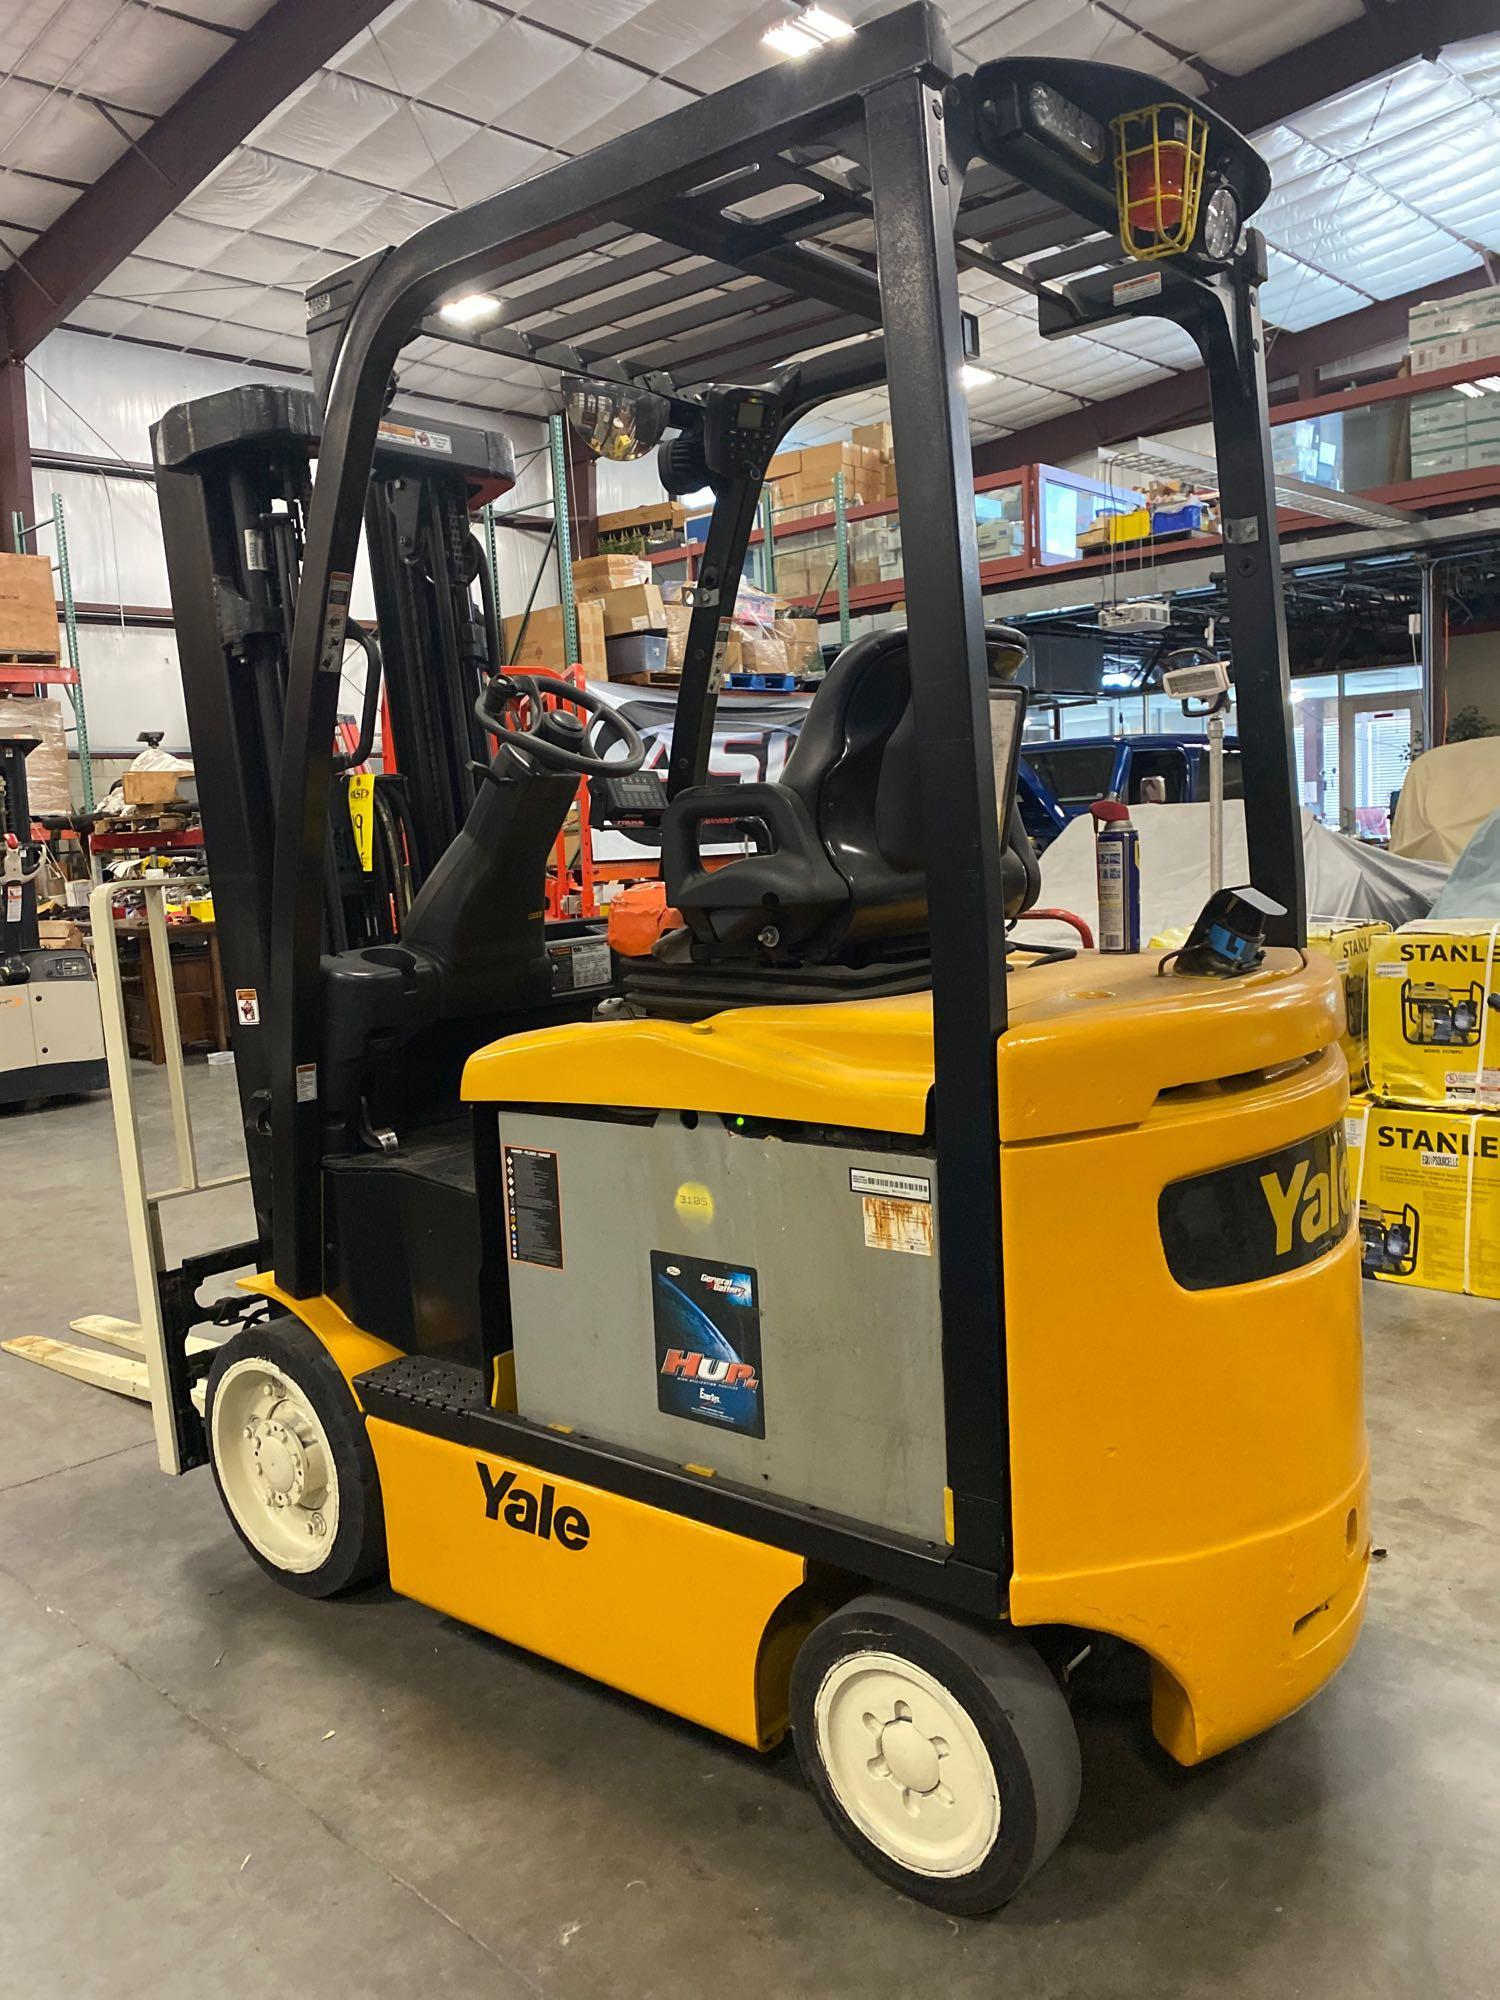 """YALE ELECTRIC FORKLIFT MODEL ERCO50VGN36TE088, 36V, 200.8"""" HEIGHT CAPACITY, APPROX. 5,000 LB CAPACIT - Image 3 of 9"""